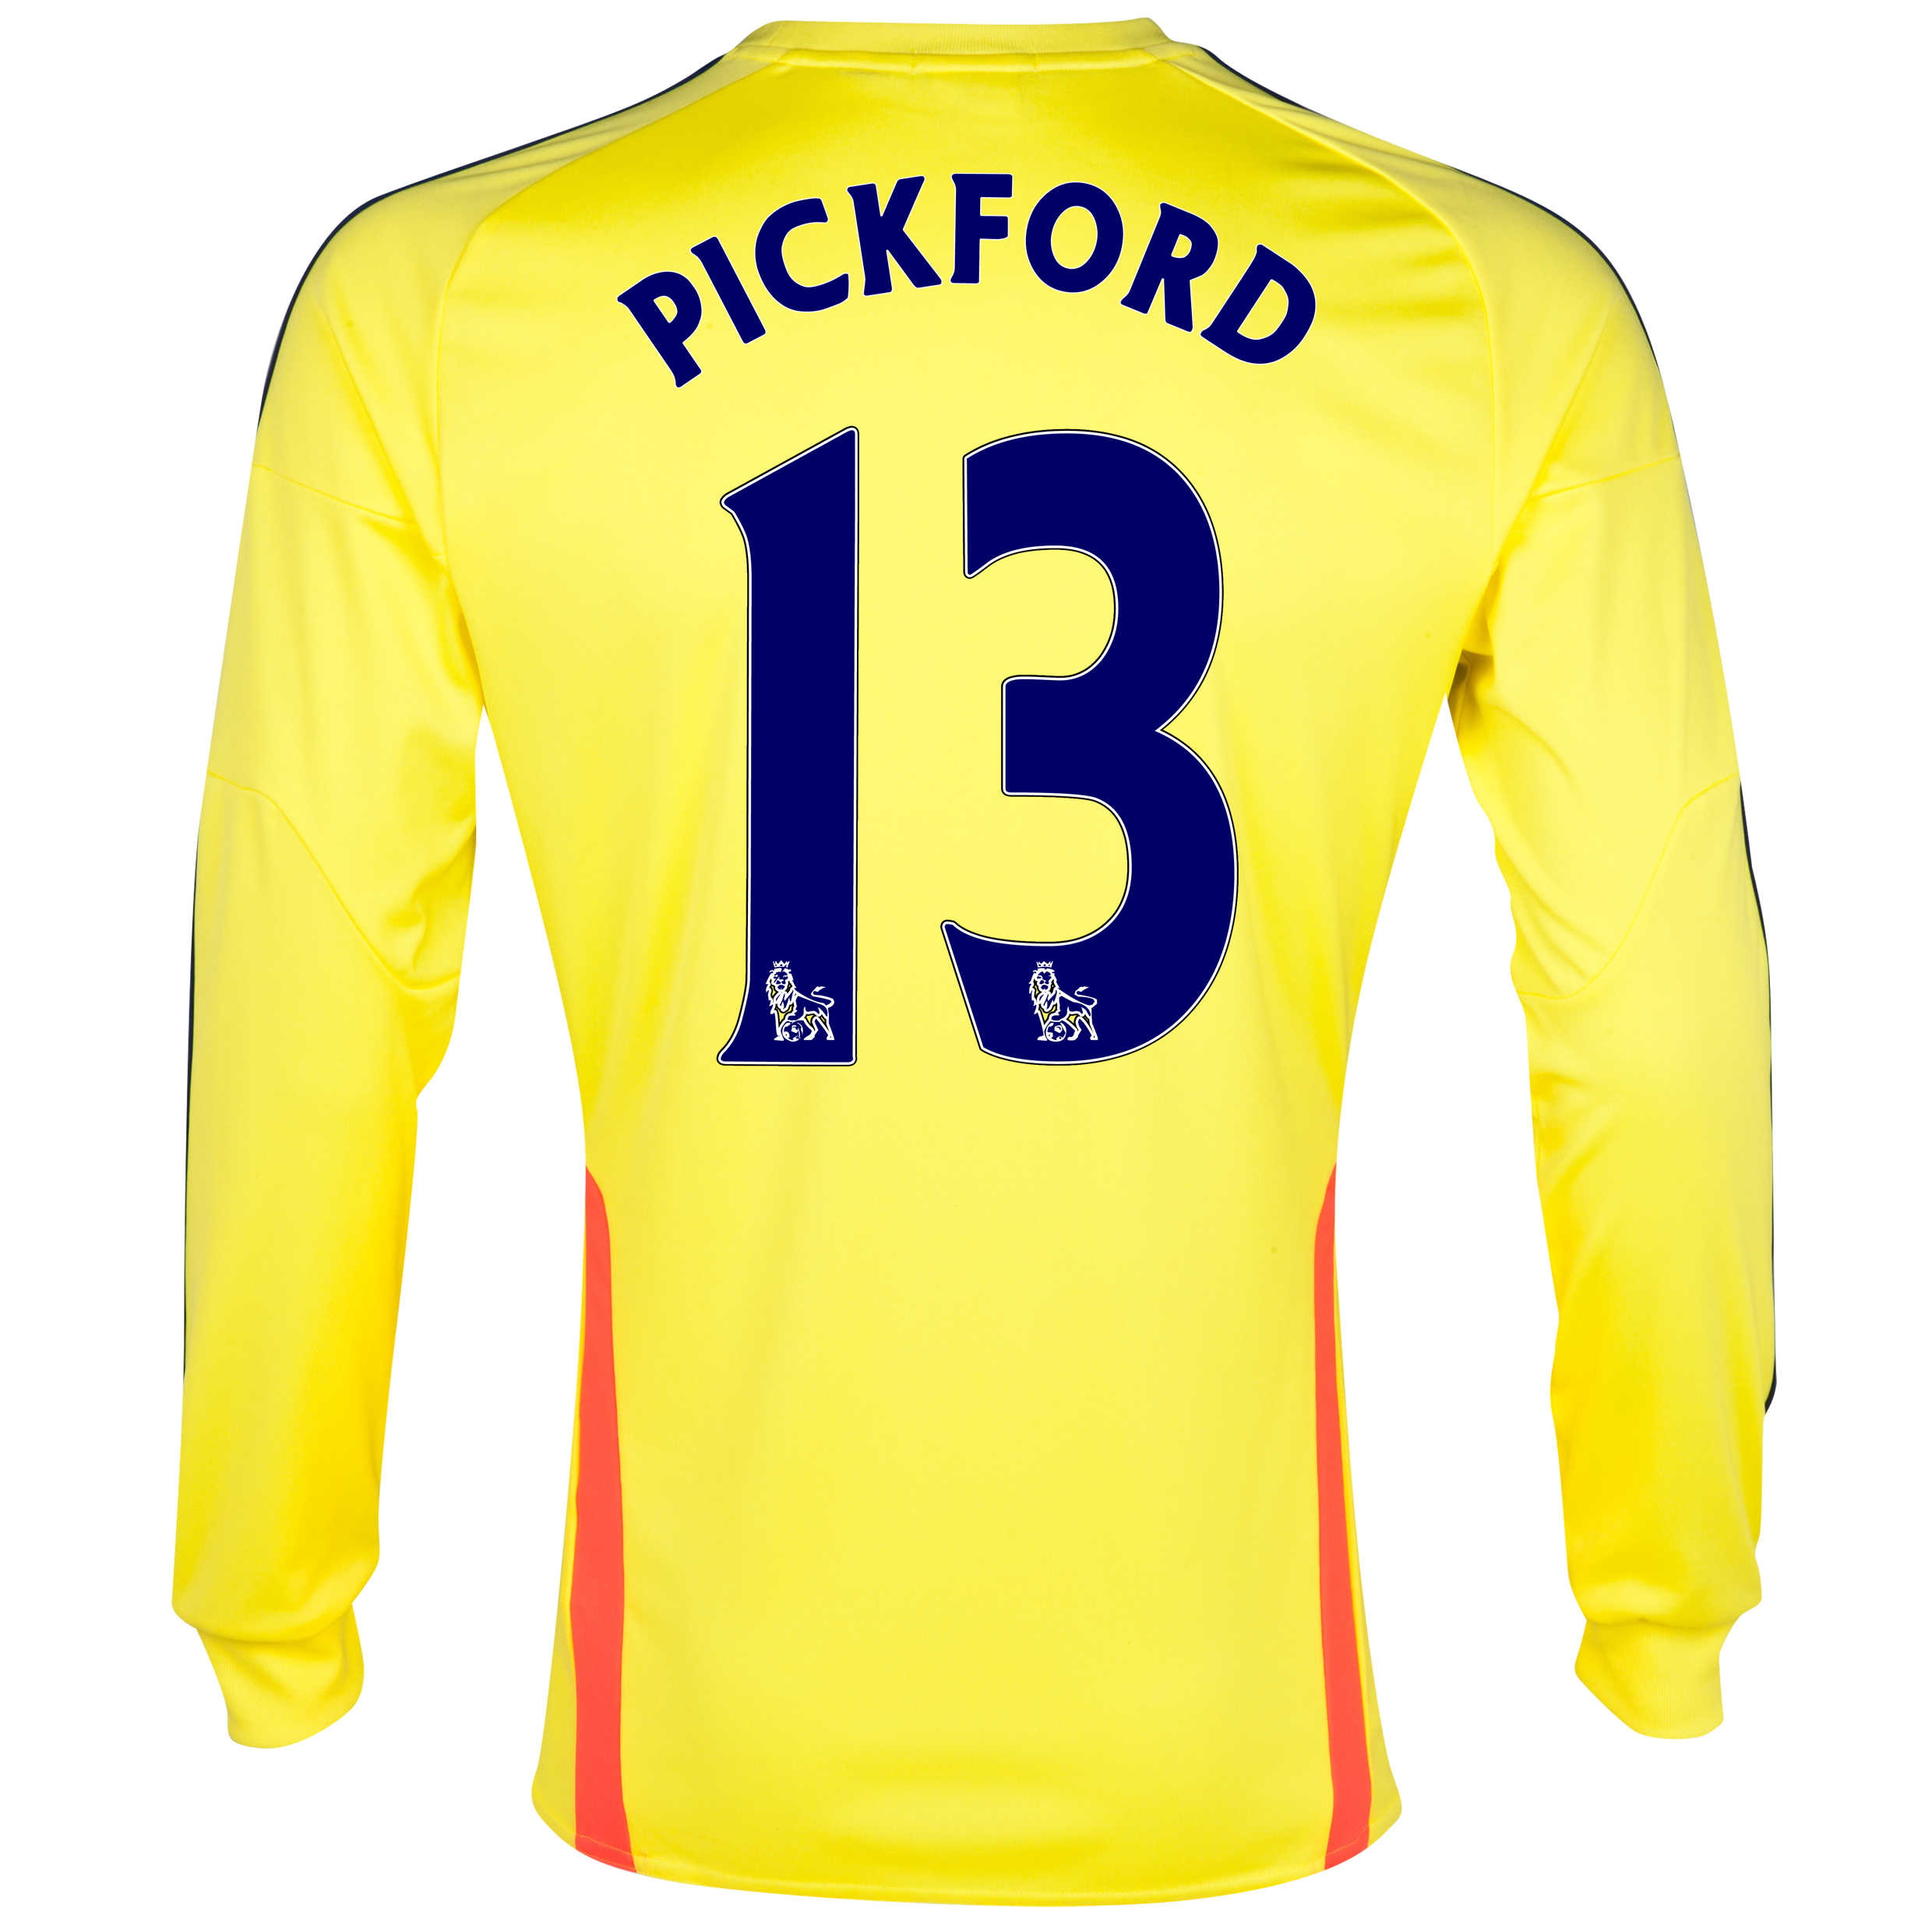 Sunderland Away Shirt 2013/14 - Long Sleeved with Pickford 13 printing